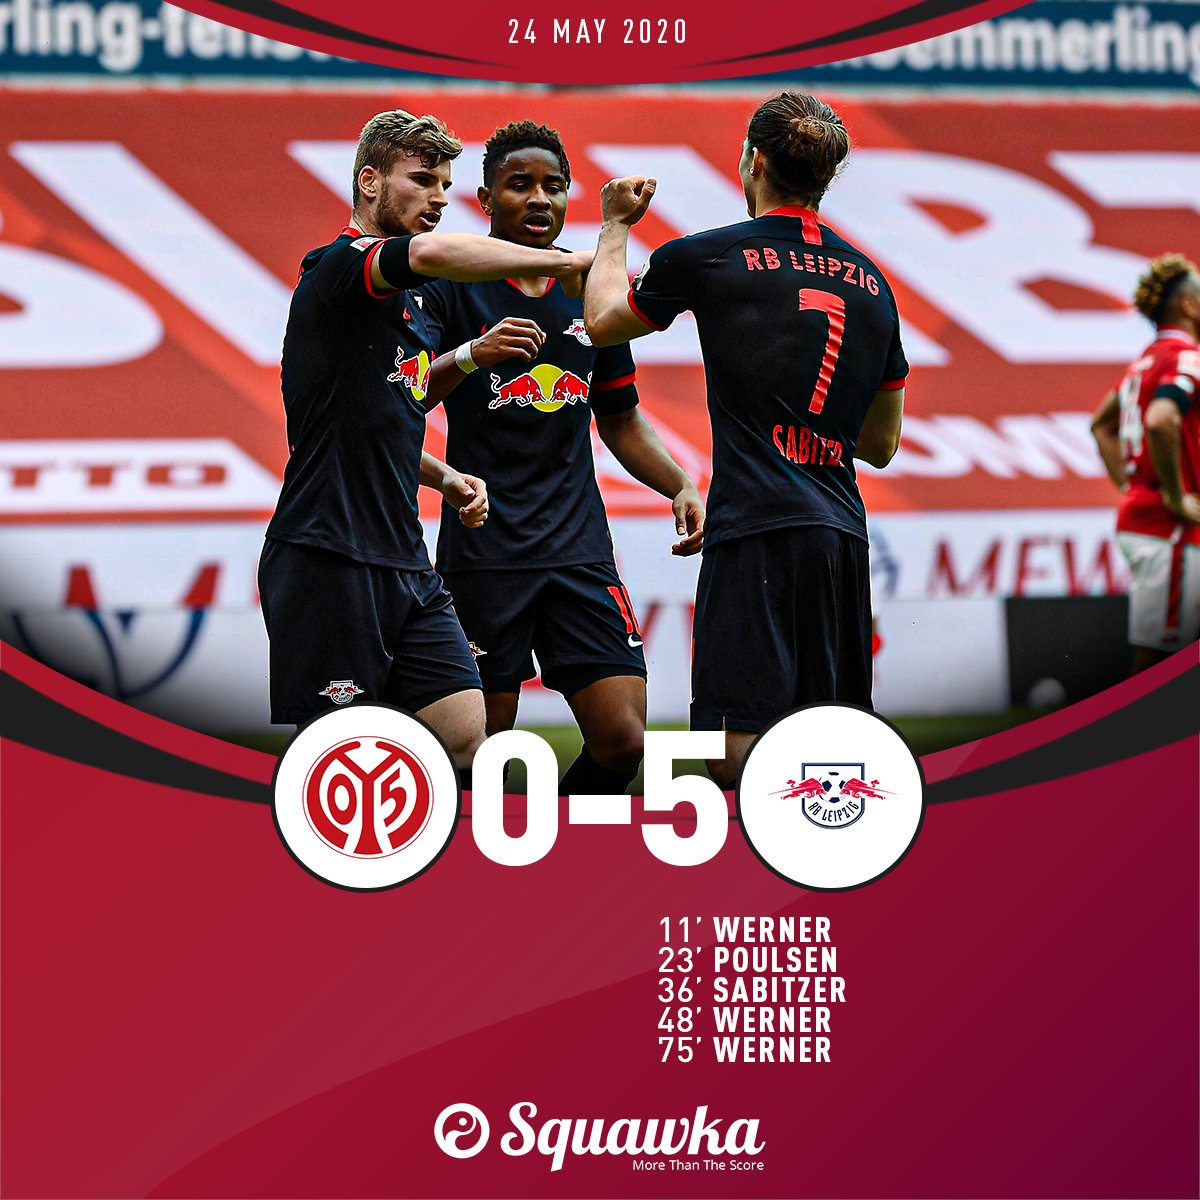 Mainz 0-5 RB Leipzig FT: ⚽️ Werner ⚽️ Poulsen ⚽️ Sabitzer ⚽️ Werner ⚽️ Werner A hat-trick from Timo Werner gives the visitors an emphatic victory against Mainz.